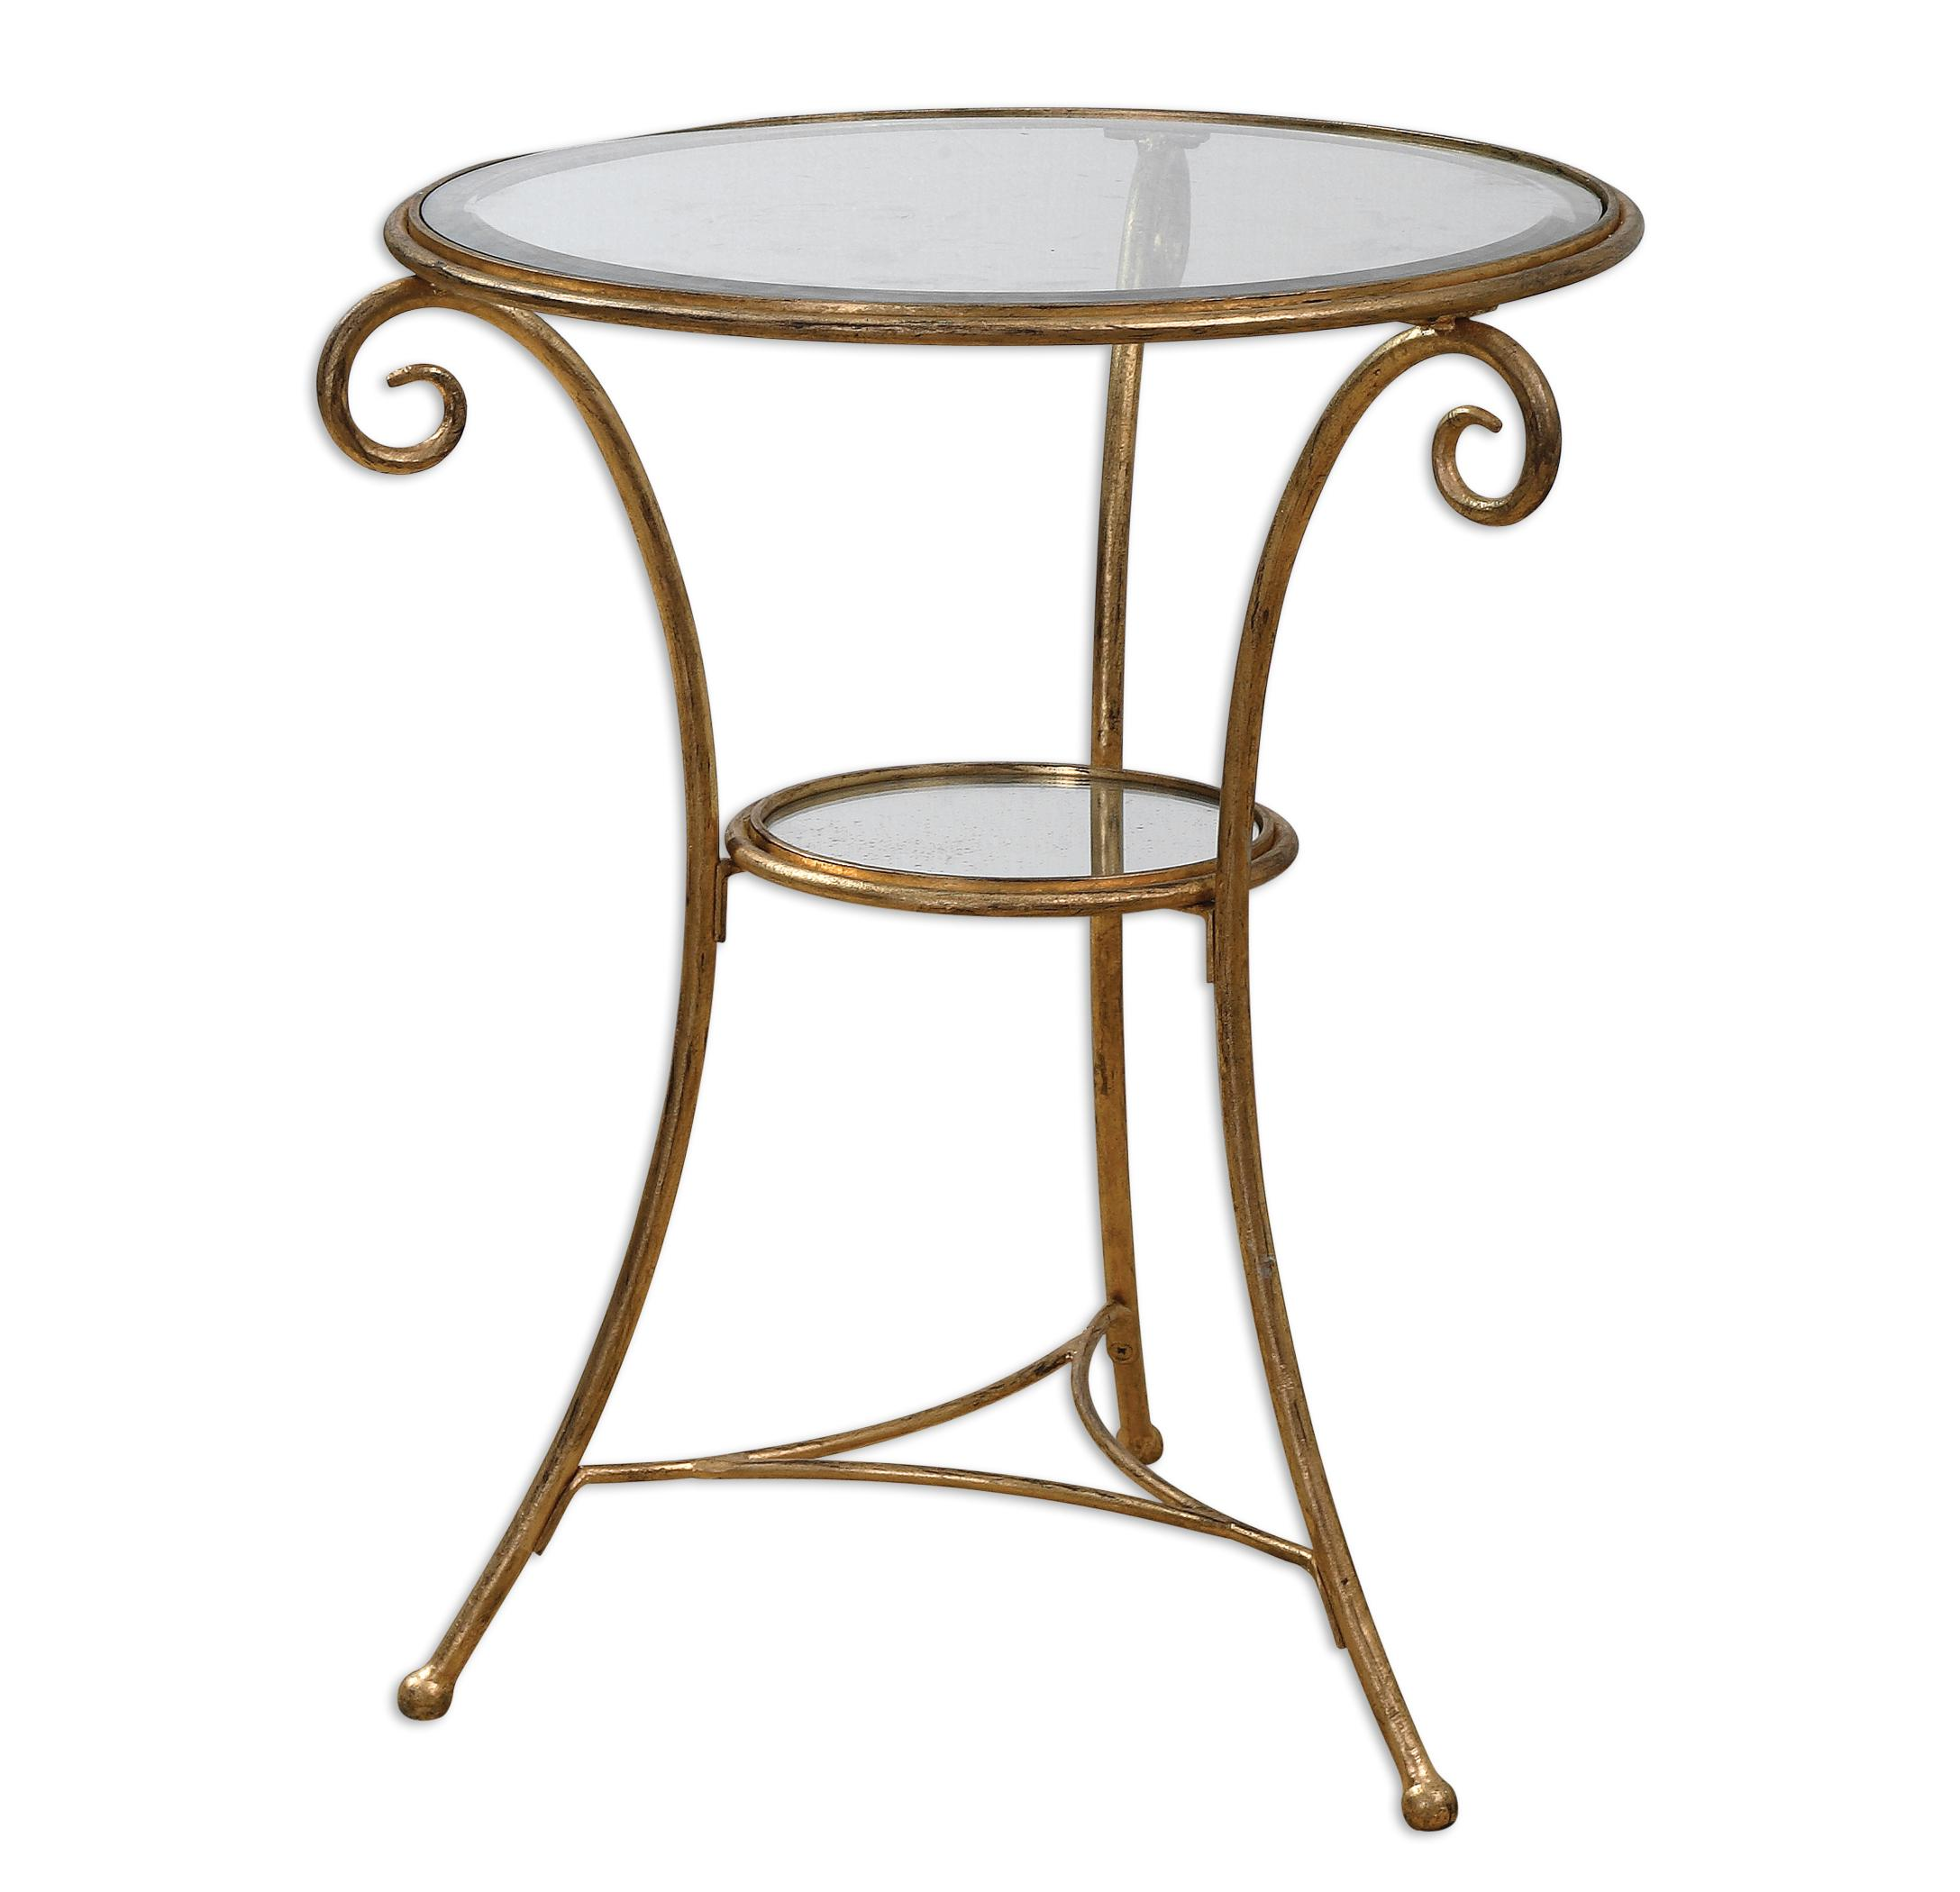 Uttermost Accent Furniture Maia Accent Table - Item Number: 24329